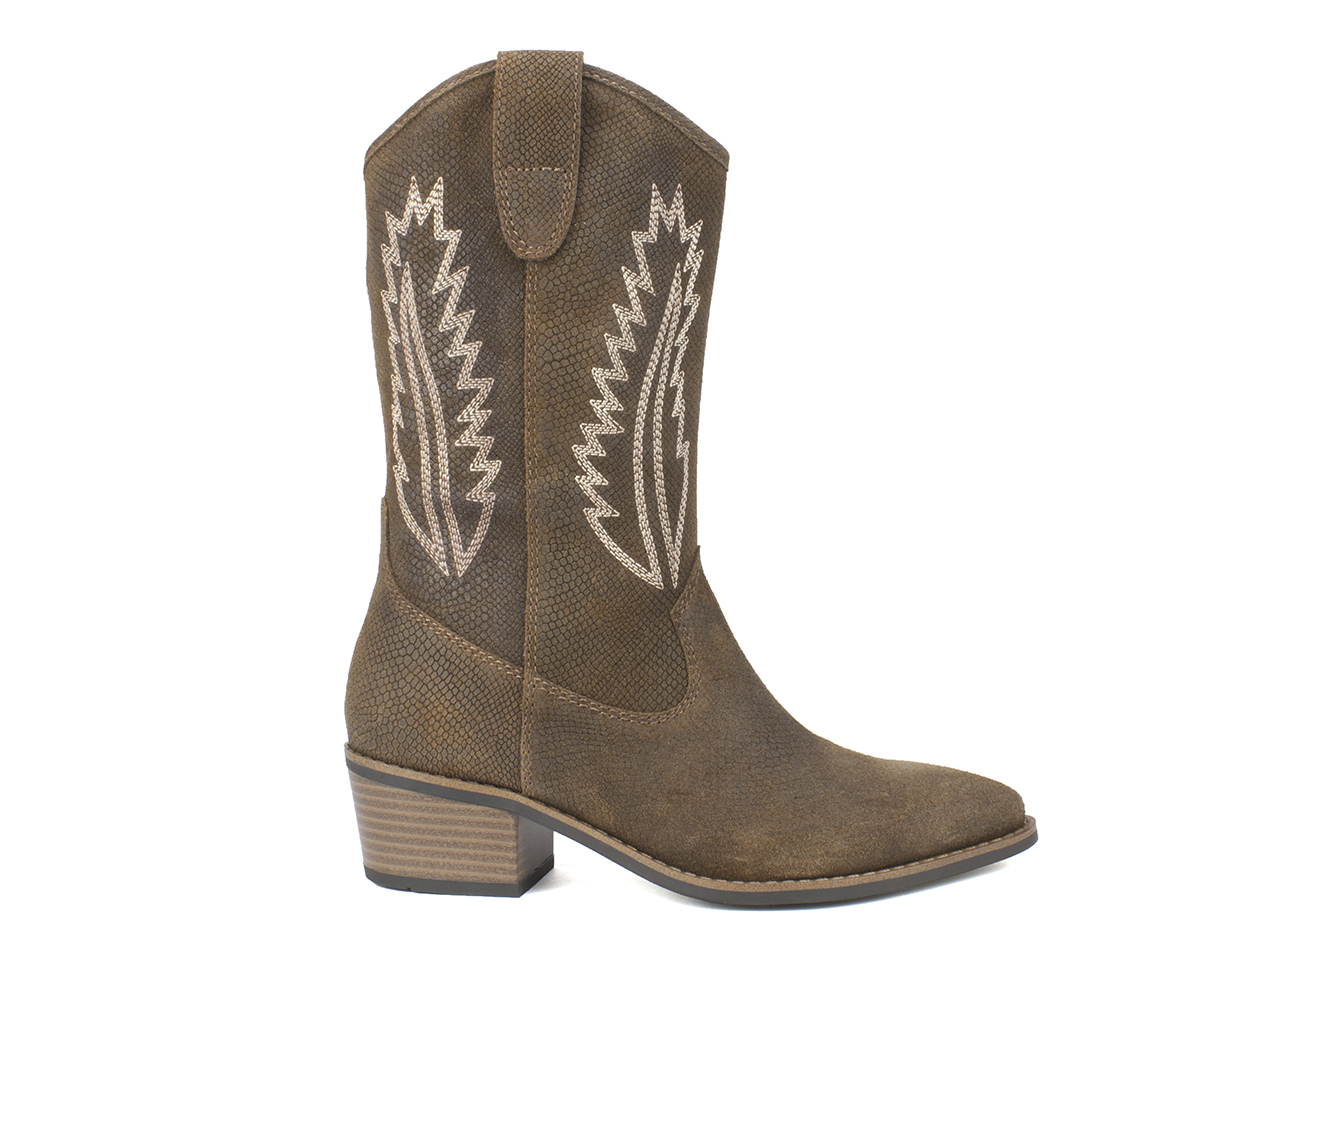 White Mountain Caraway Women's Boots (Brown - Leather)